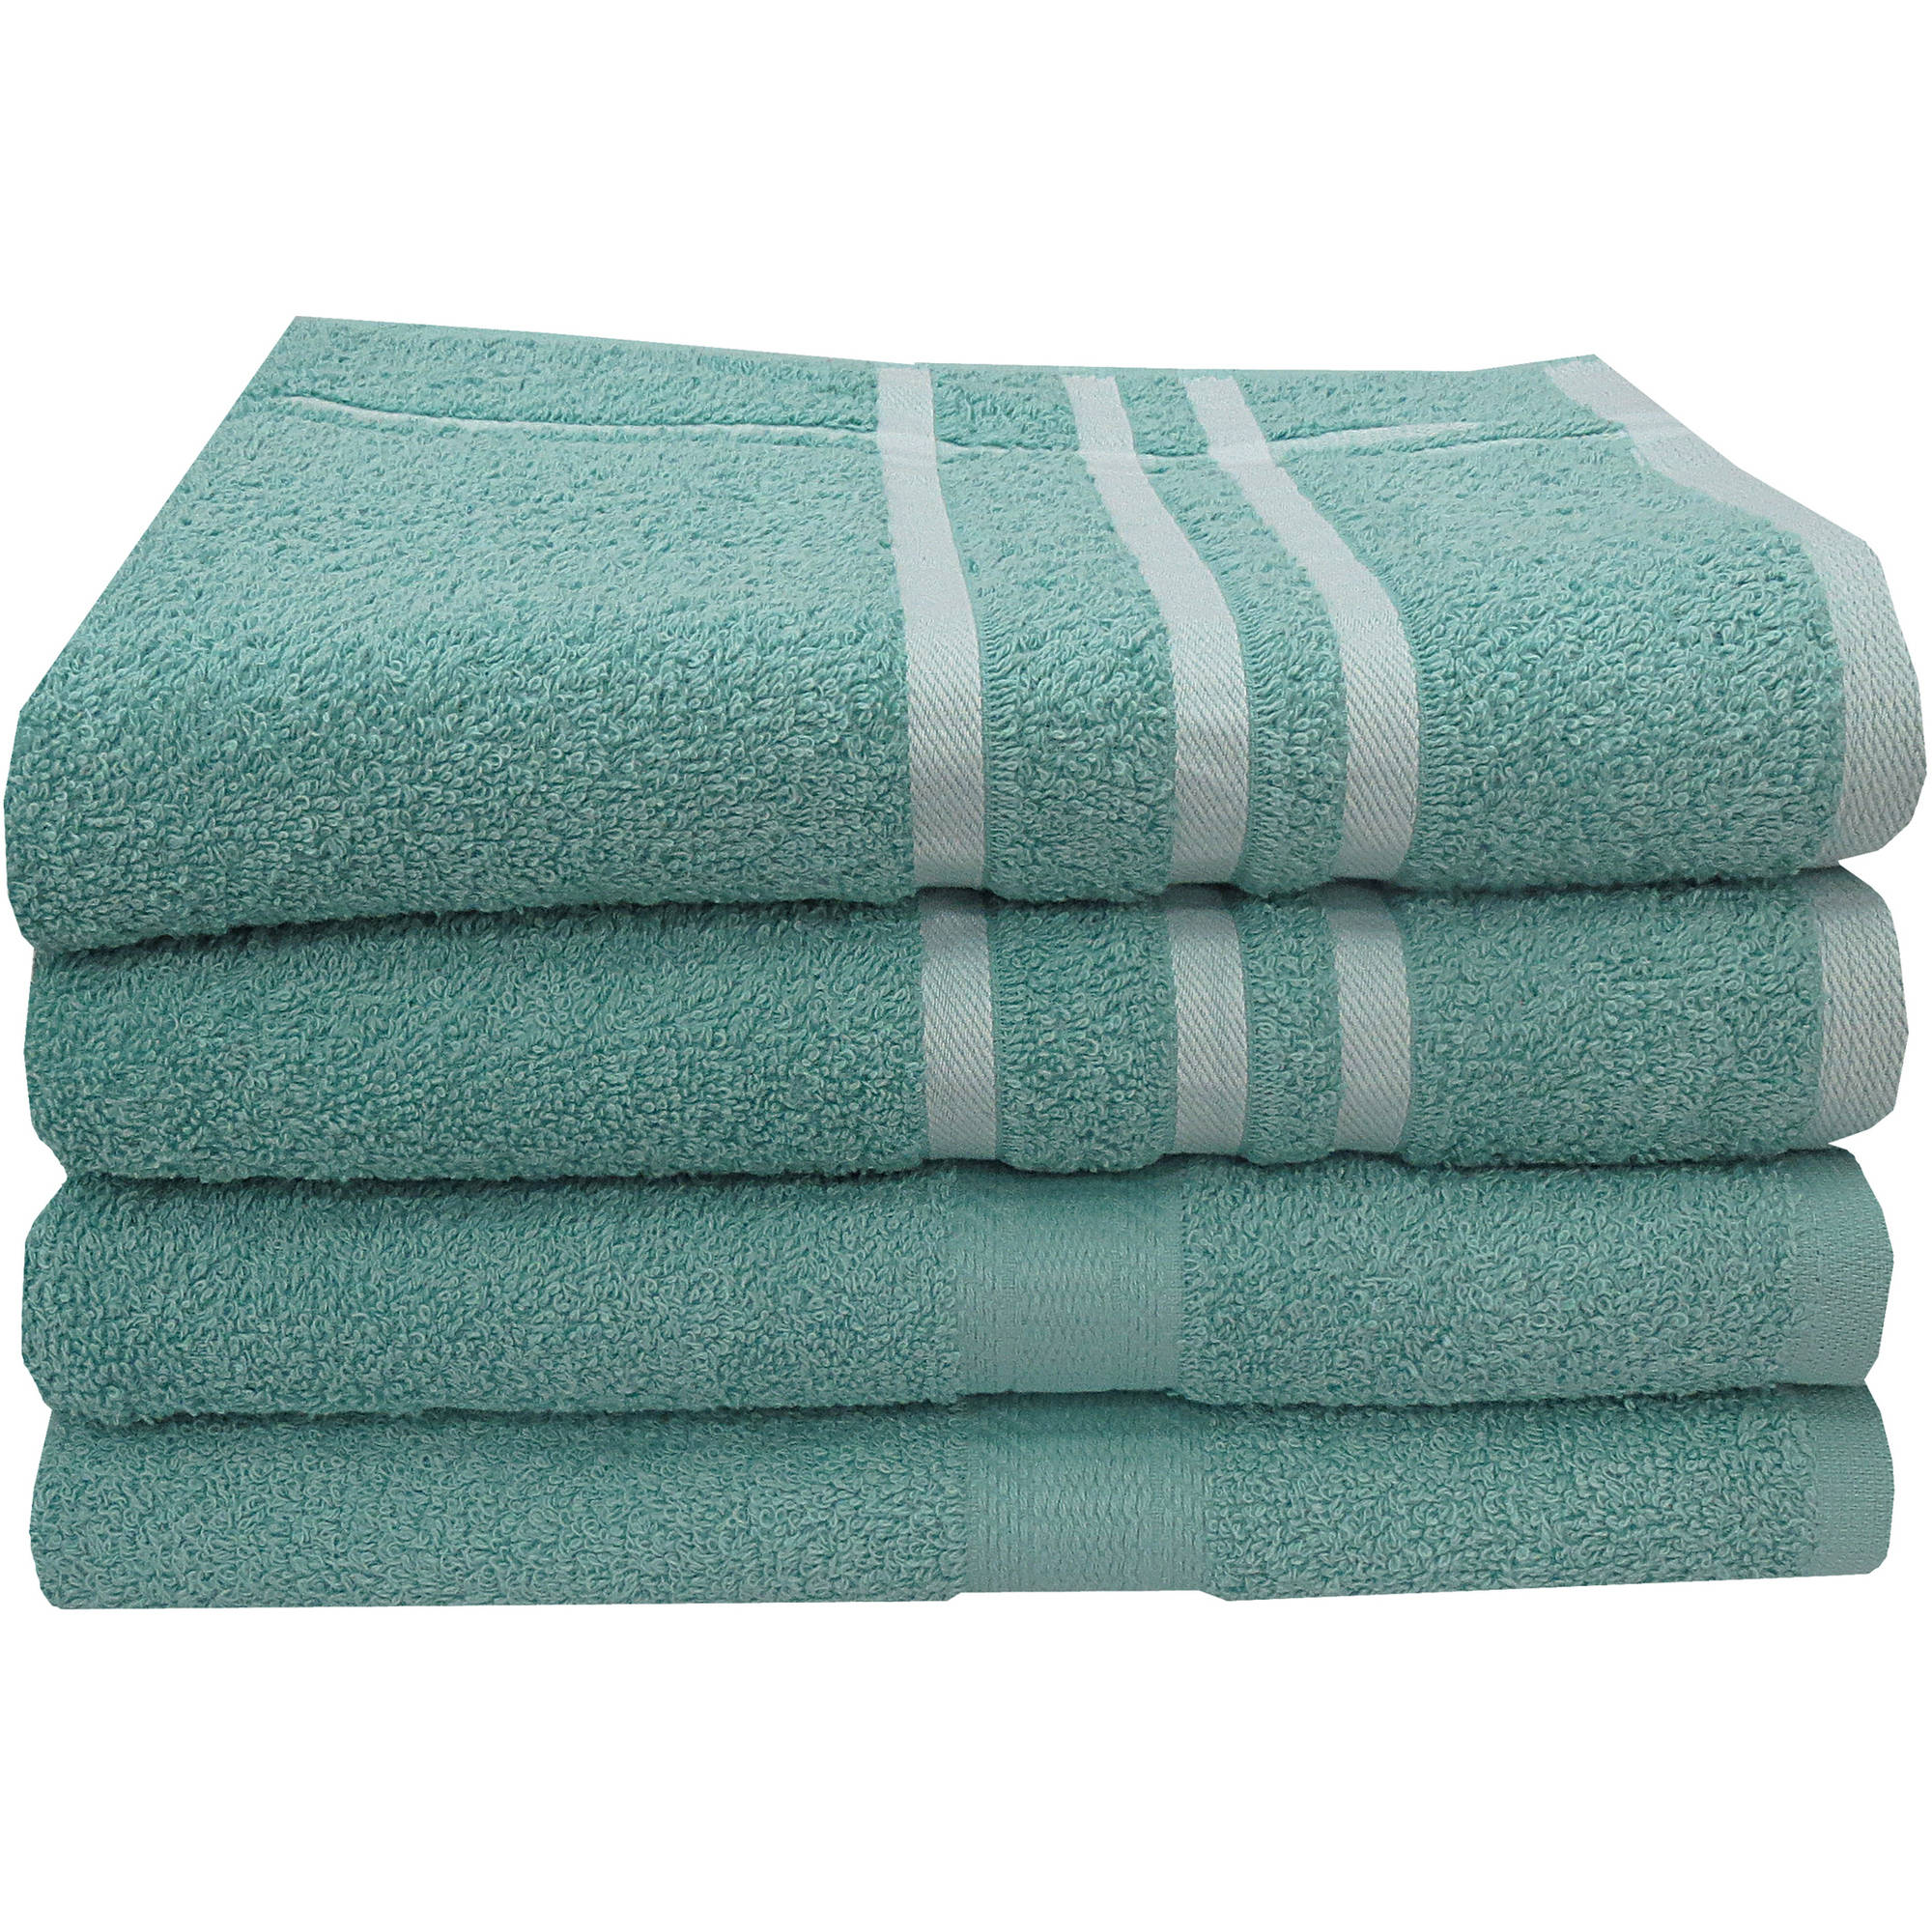 Mainstays Basic 4-Piece Bath Towel Set, Solid and Stripes